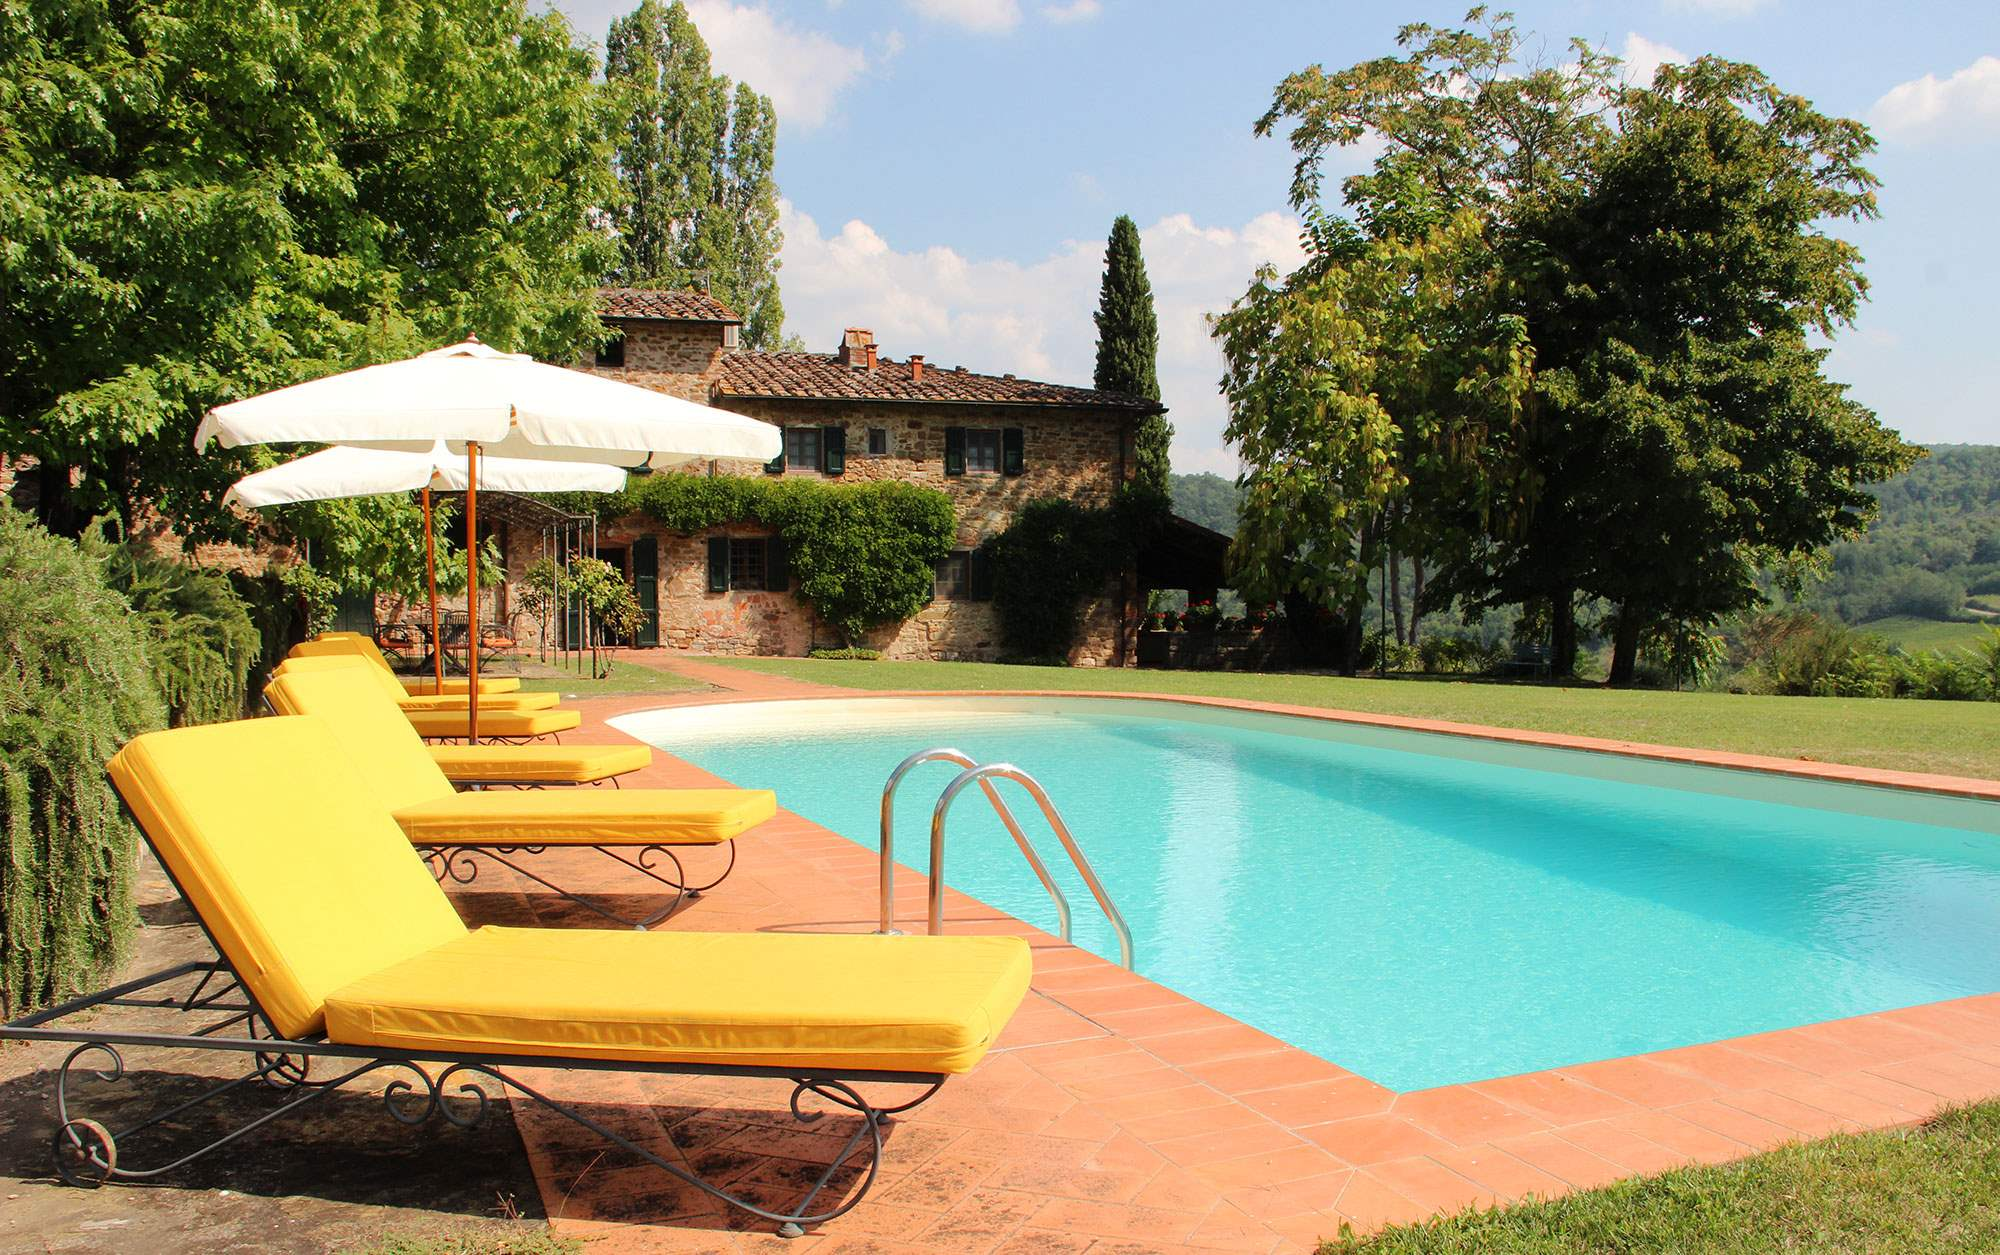 Villa Felicita, Main house only, 6 persons rate, 3 bedroom villa in Chianti & Countryside, Tuscany Photo #1